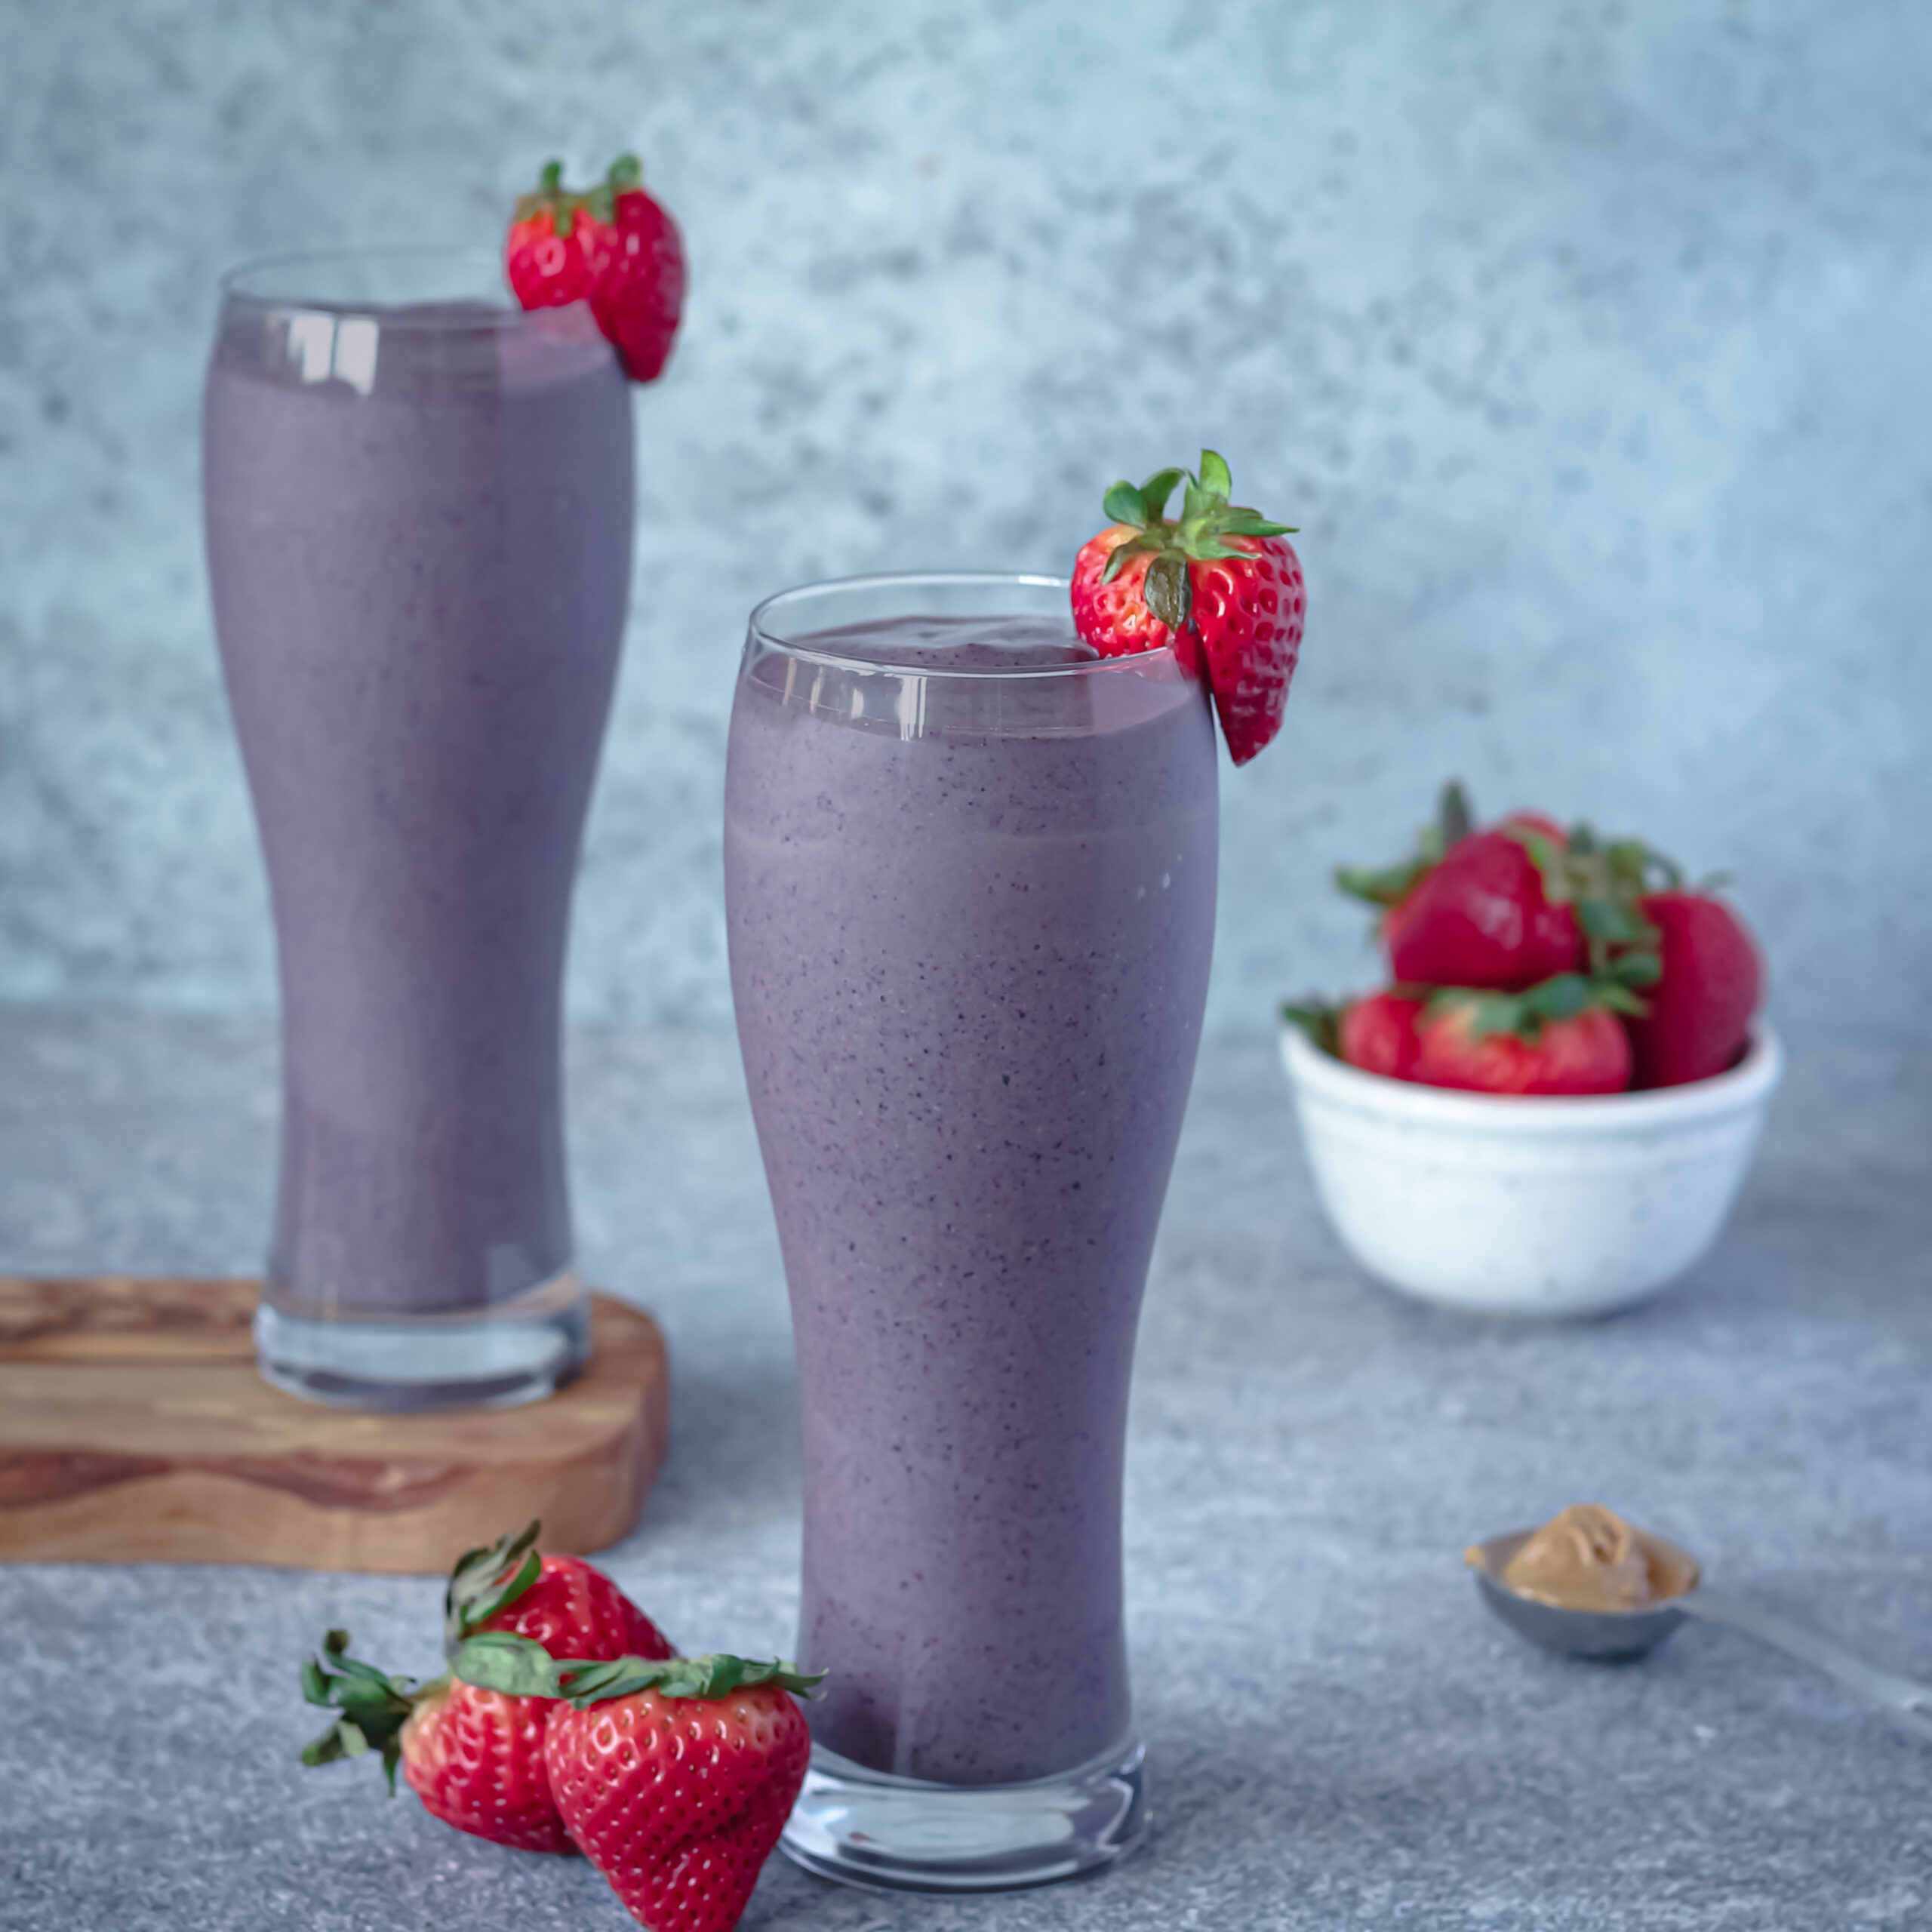 Peanut Butter and Jam Smoothie